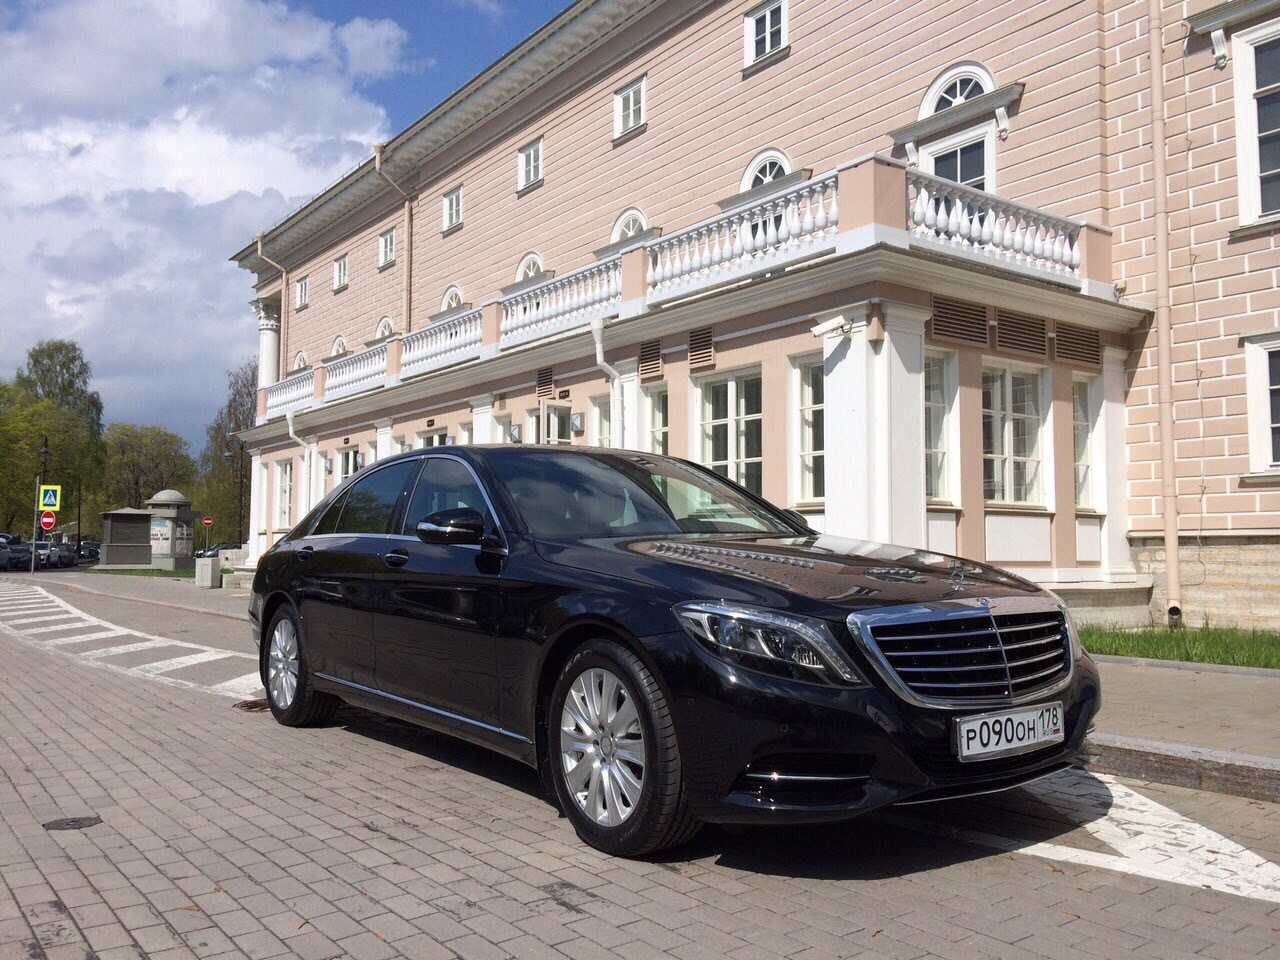 Business tours in St. Petersburg